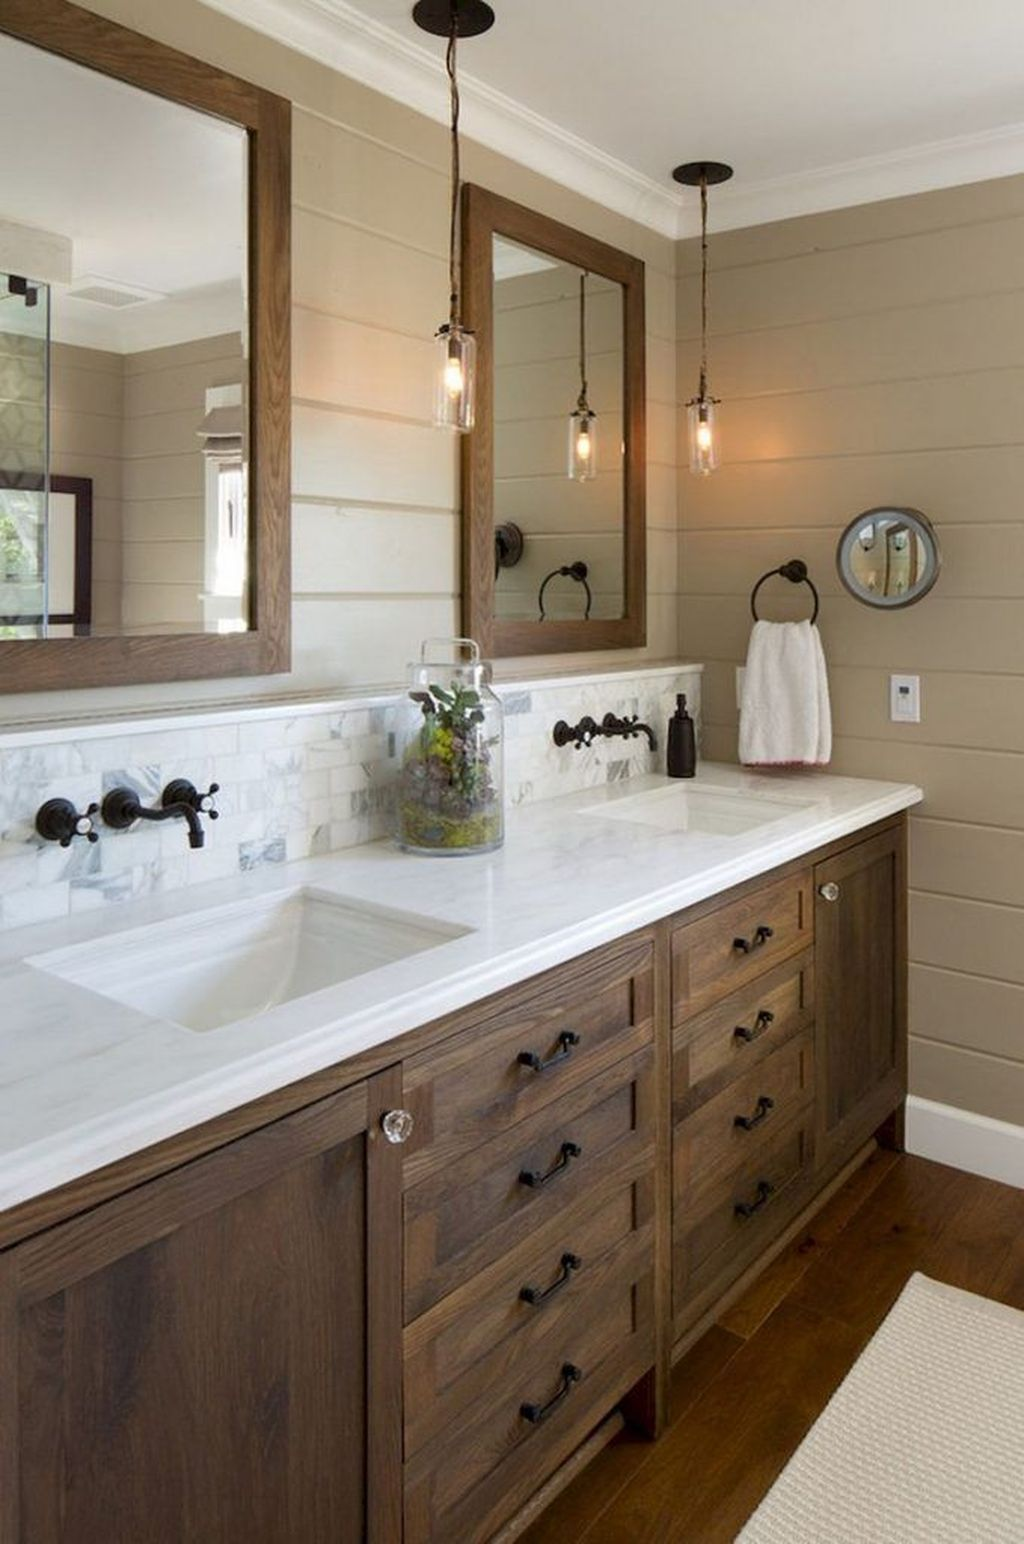 21+ Small Bathroom Ideas Which Are Functional images